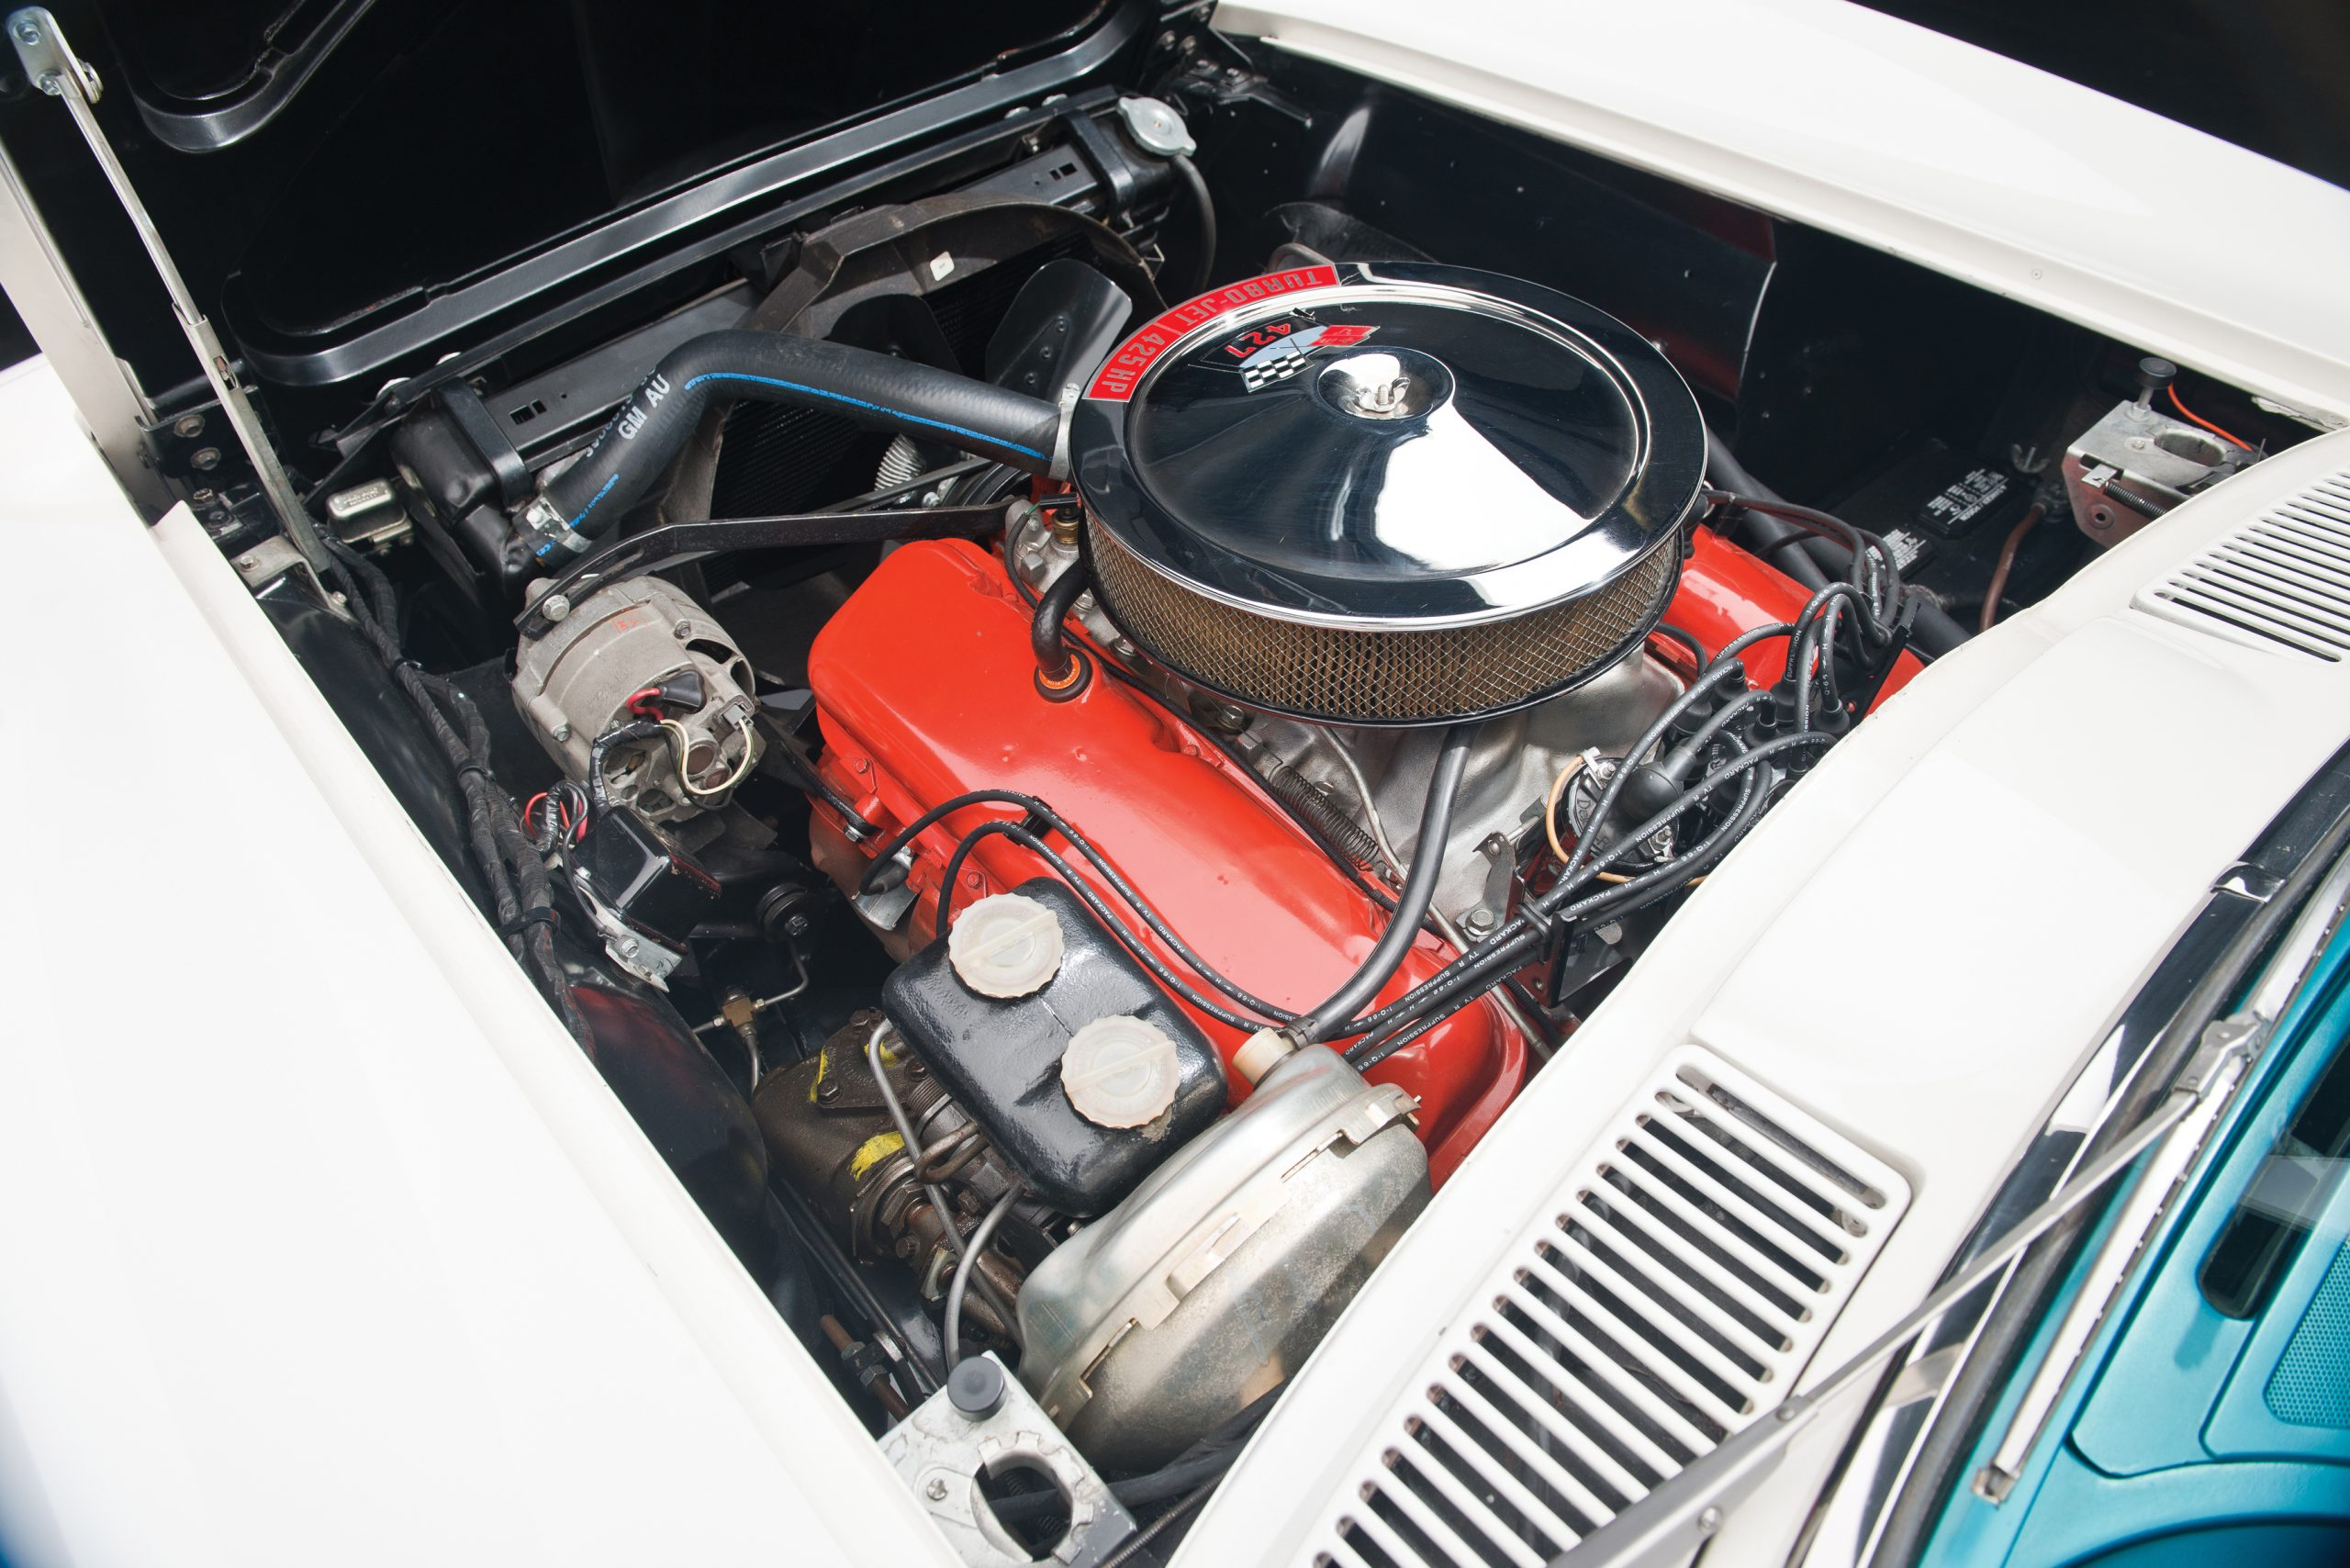 1966 Chevrolet Corvette Sting Ray 427 425 Big Tank Coupe Engine